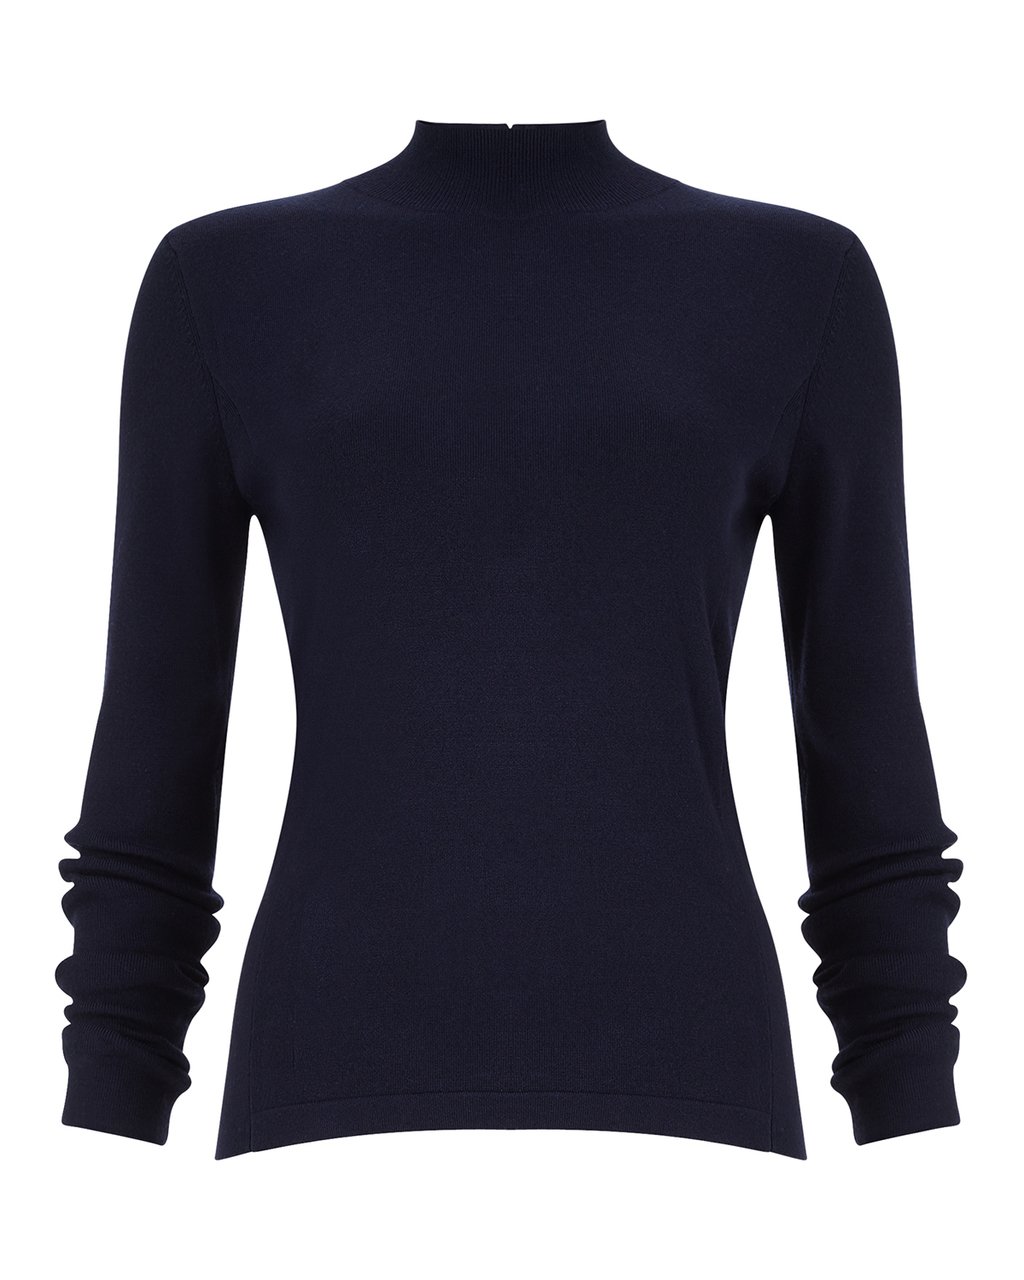 Rita Zip Back Knit - pattern: plain; neckline: high neck; style: standard; predominant colour: navy; occasions: casual, work, creative work; length: standard; fit: standard fit; sleeve length: long sleeve; sleeve style: standard; texture group: knits/crochet; pattern type: knitted - fine stitch; season: a/w 2015; wardrobe: basic